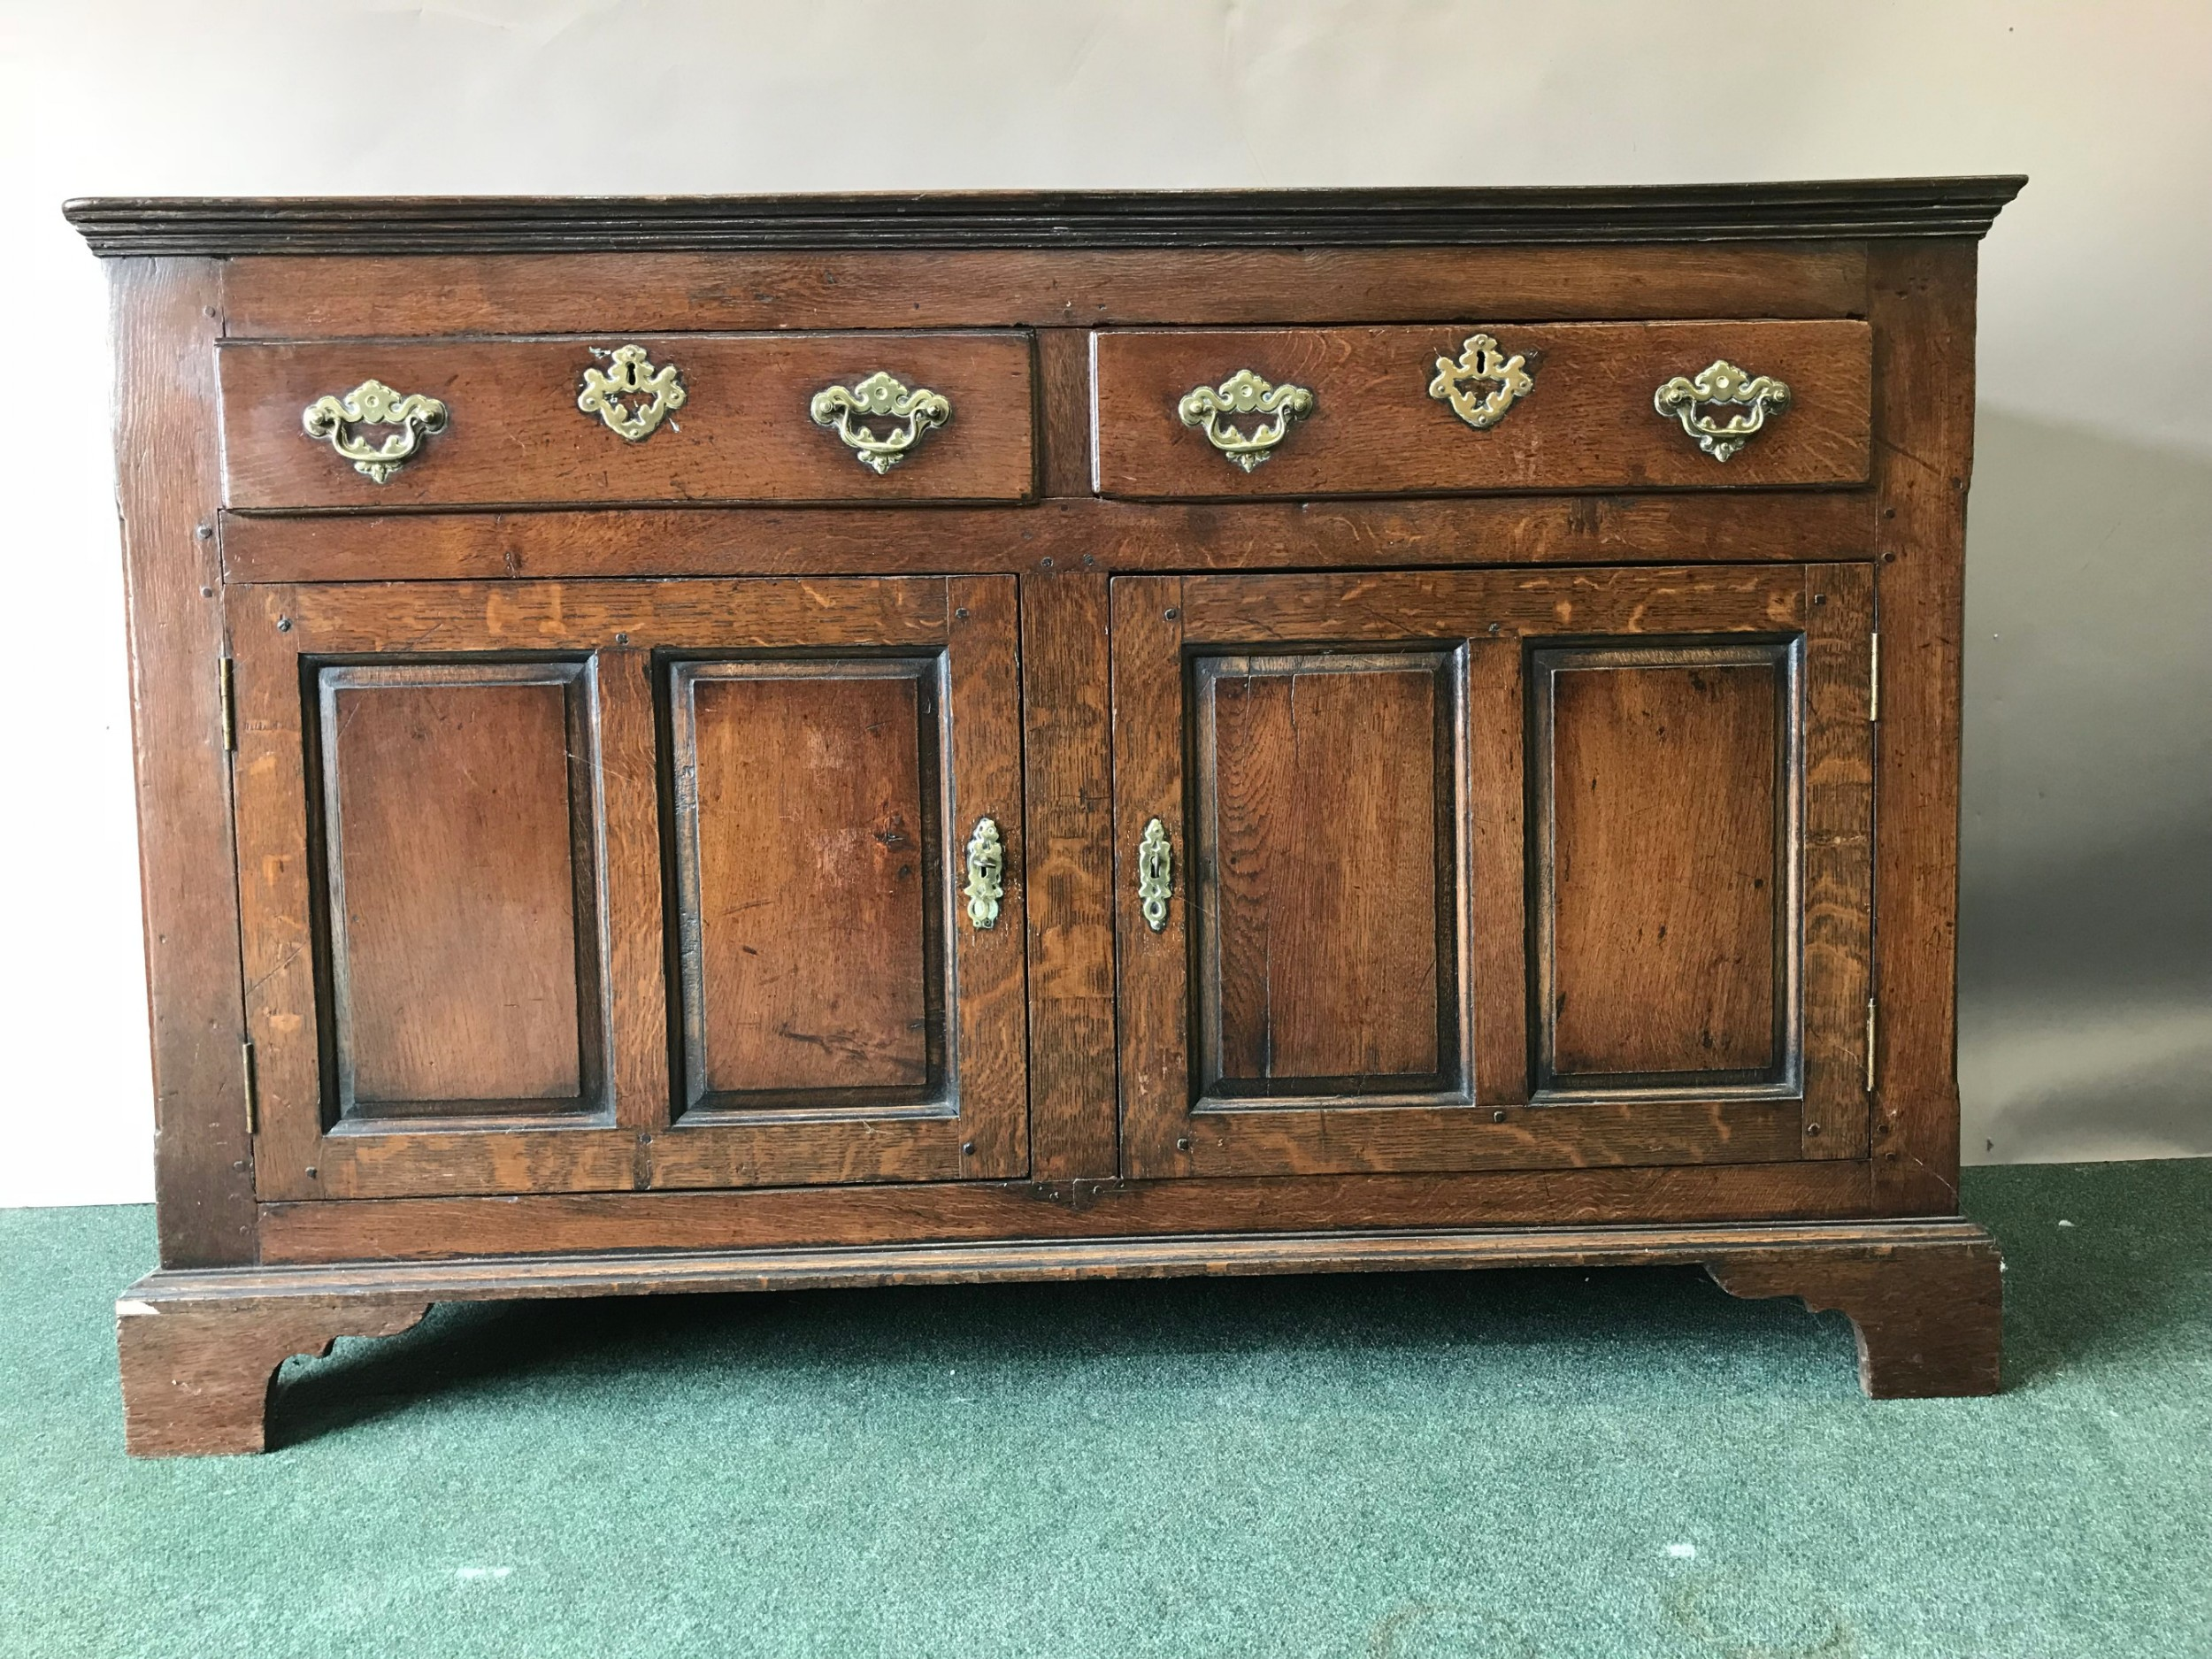 18th century english oak two door dresser